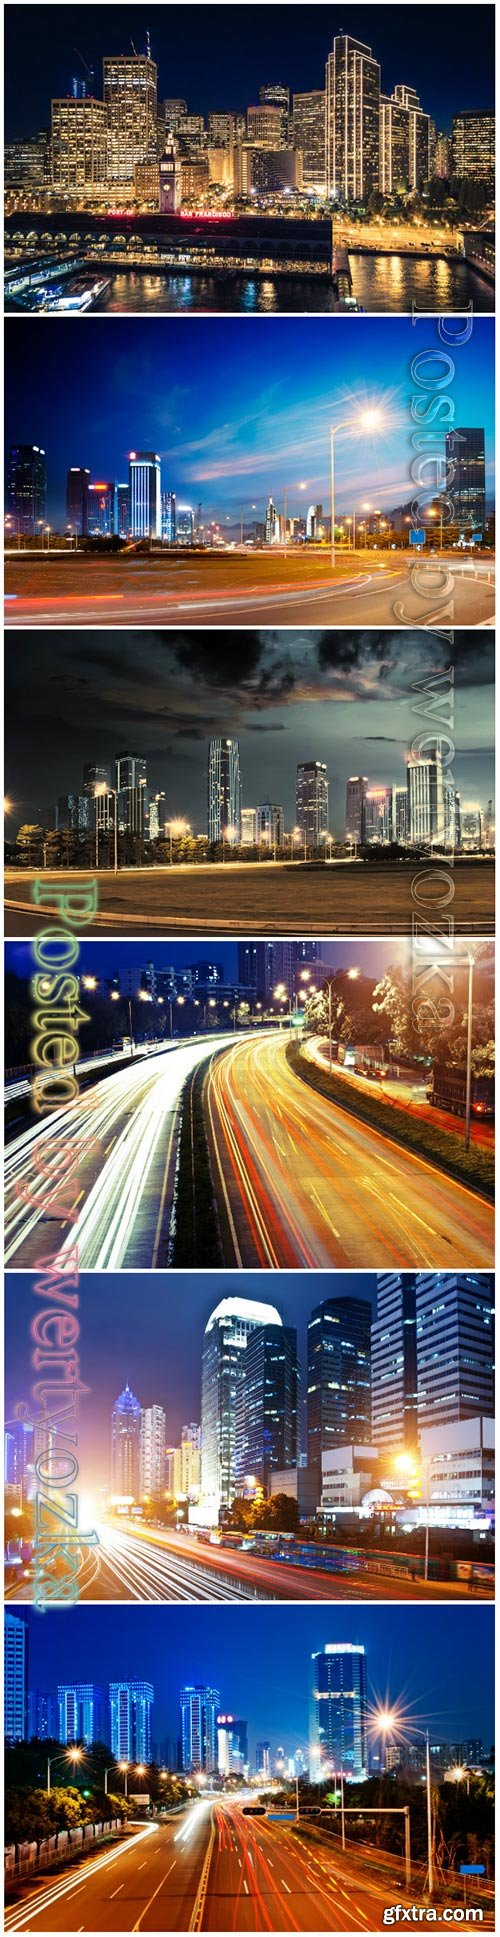 Night city beautiful stock photo